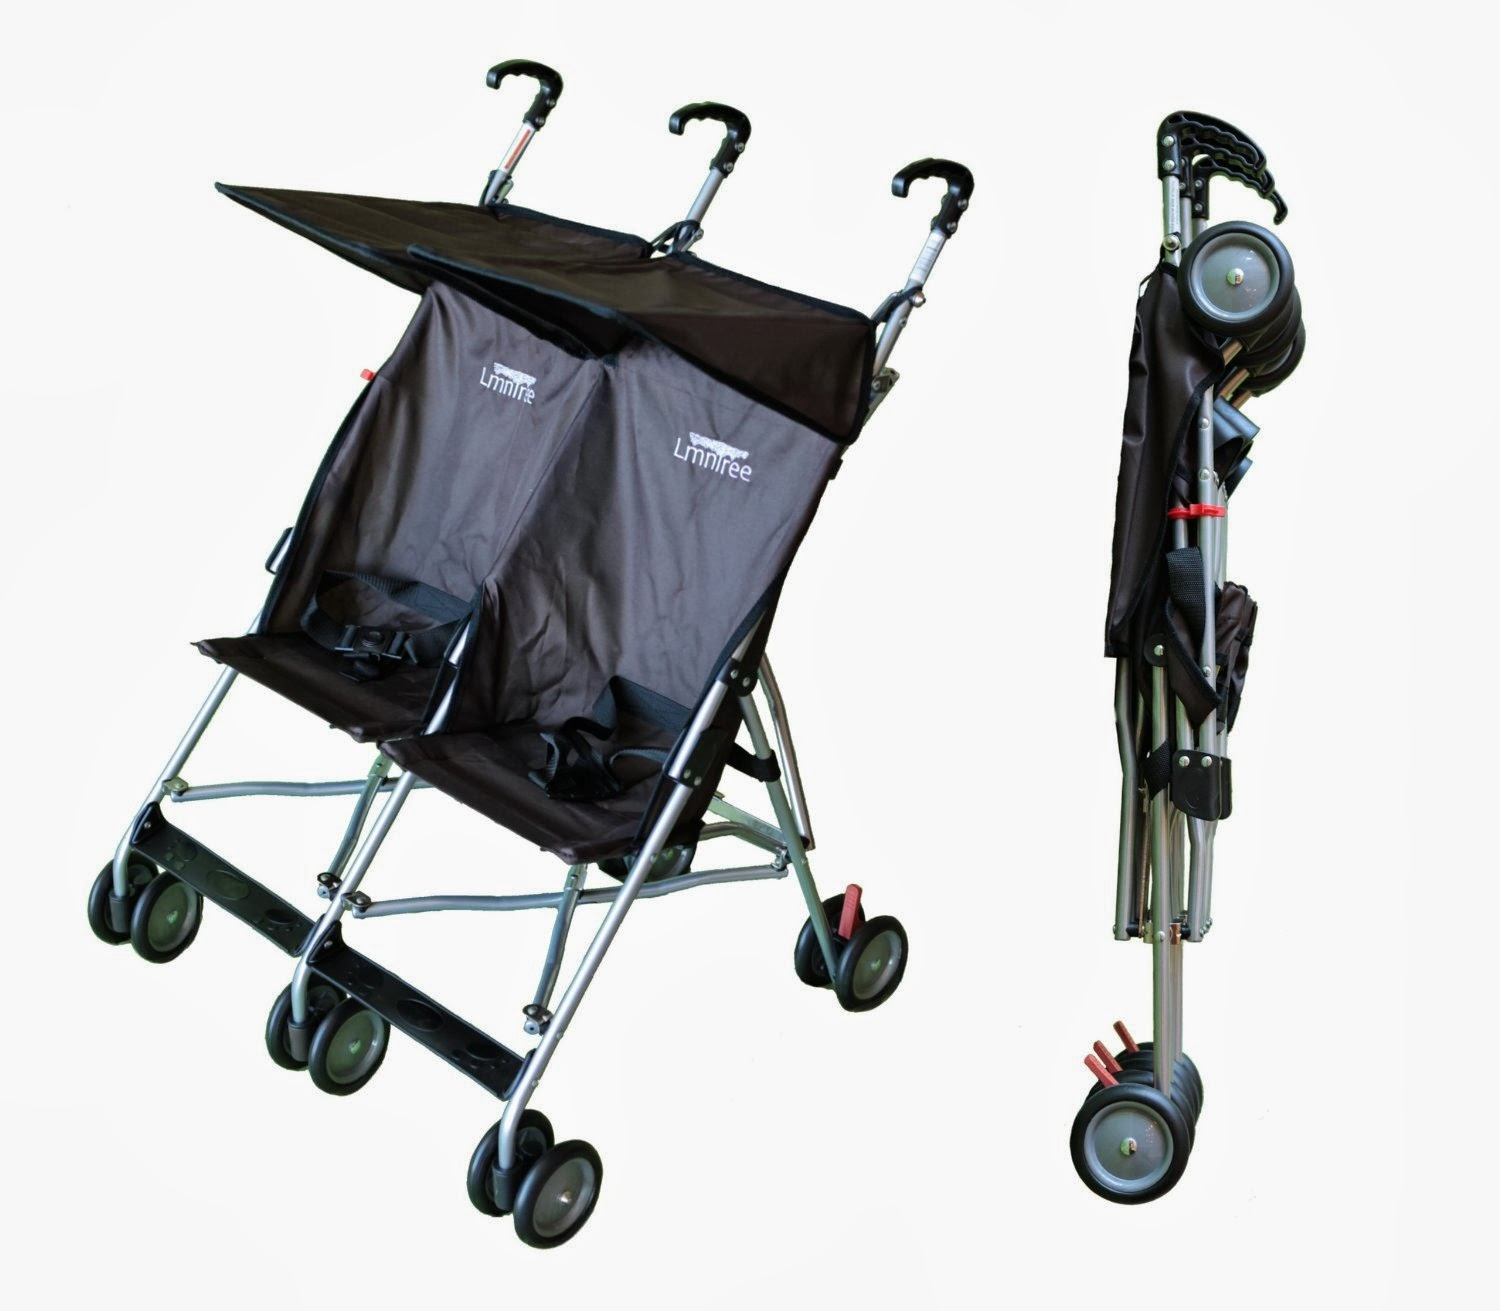 Canopy For Jeep Double Umbrella Stroller